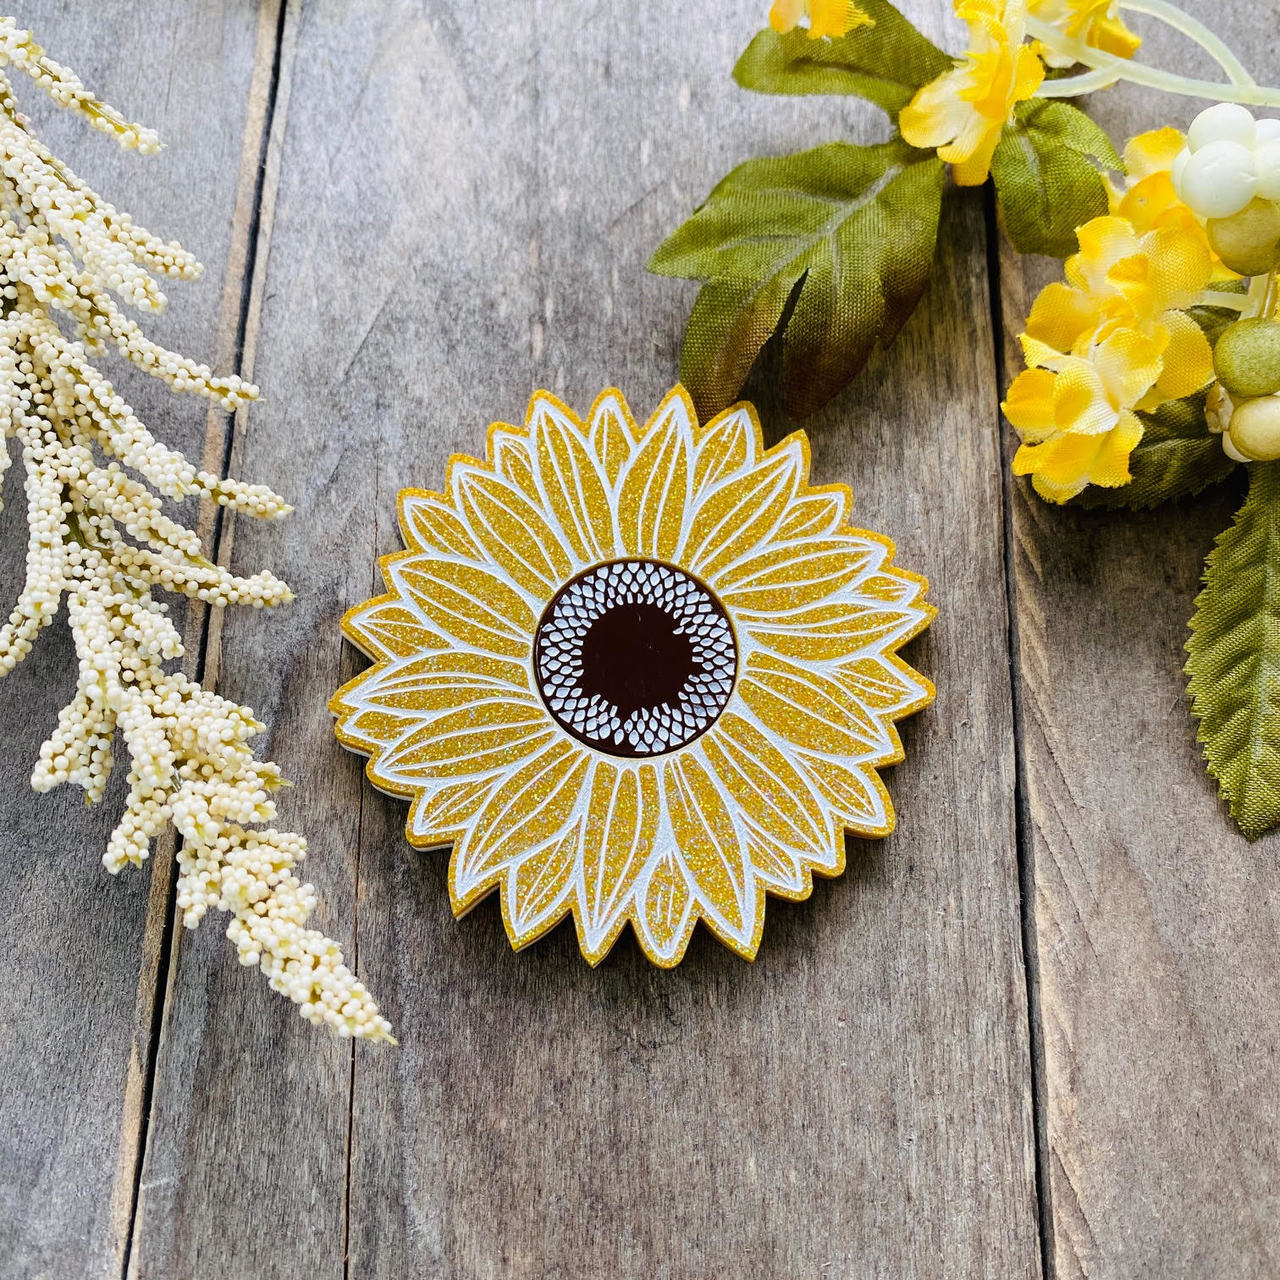 Sunflower Brooch by Poly Paige *Pre Order for 15 October*